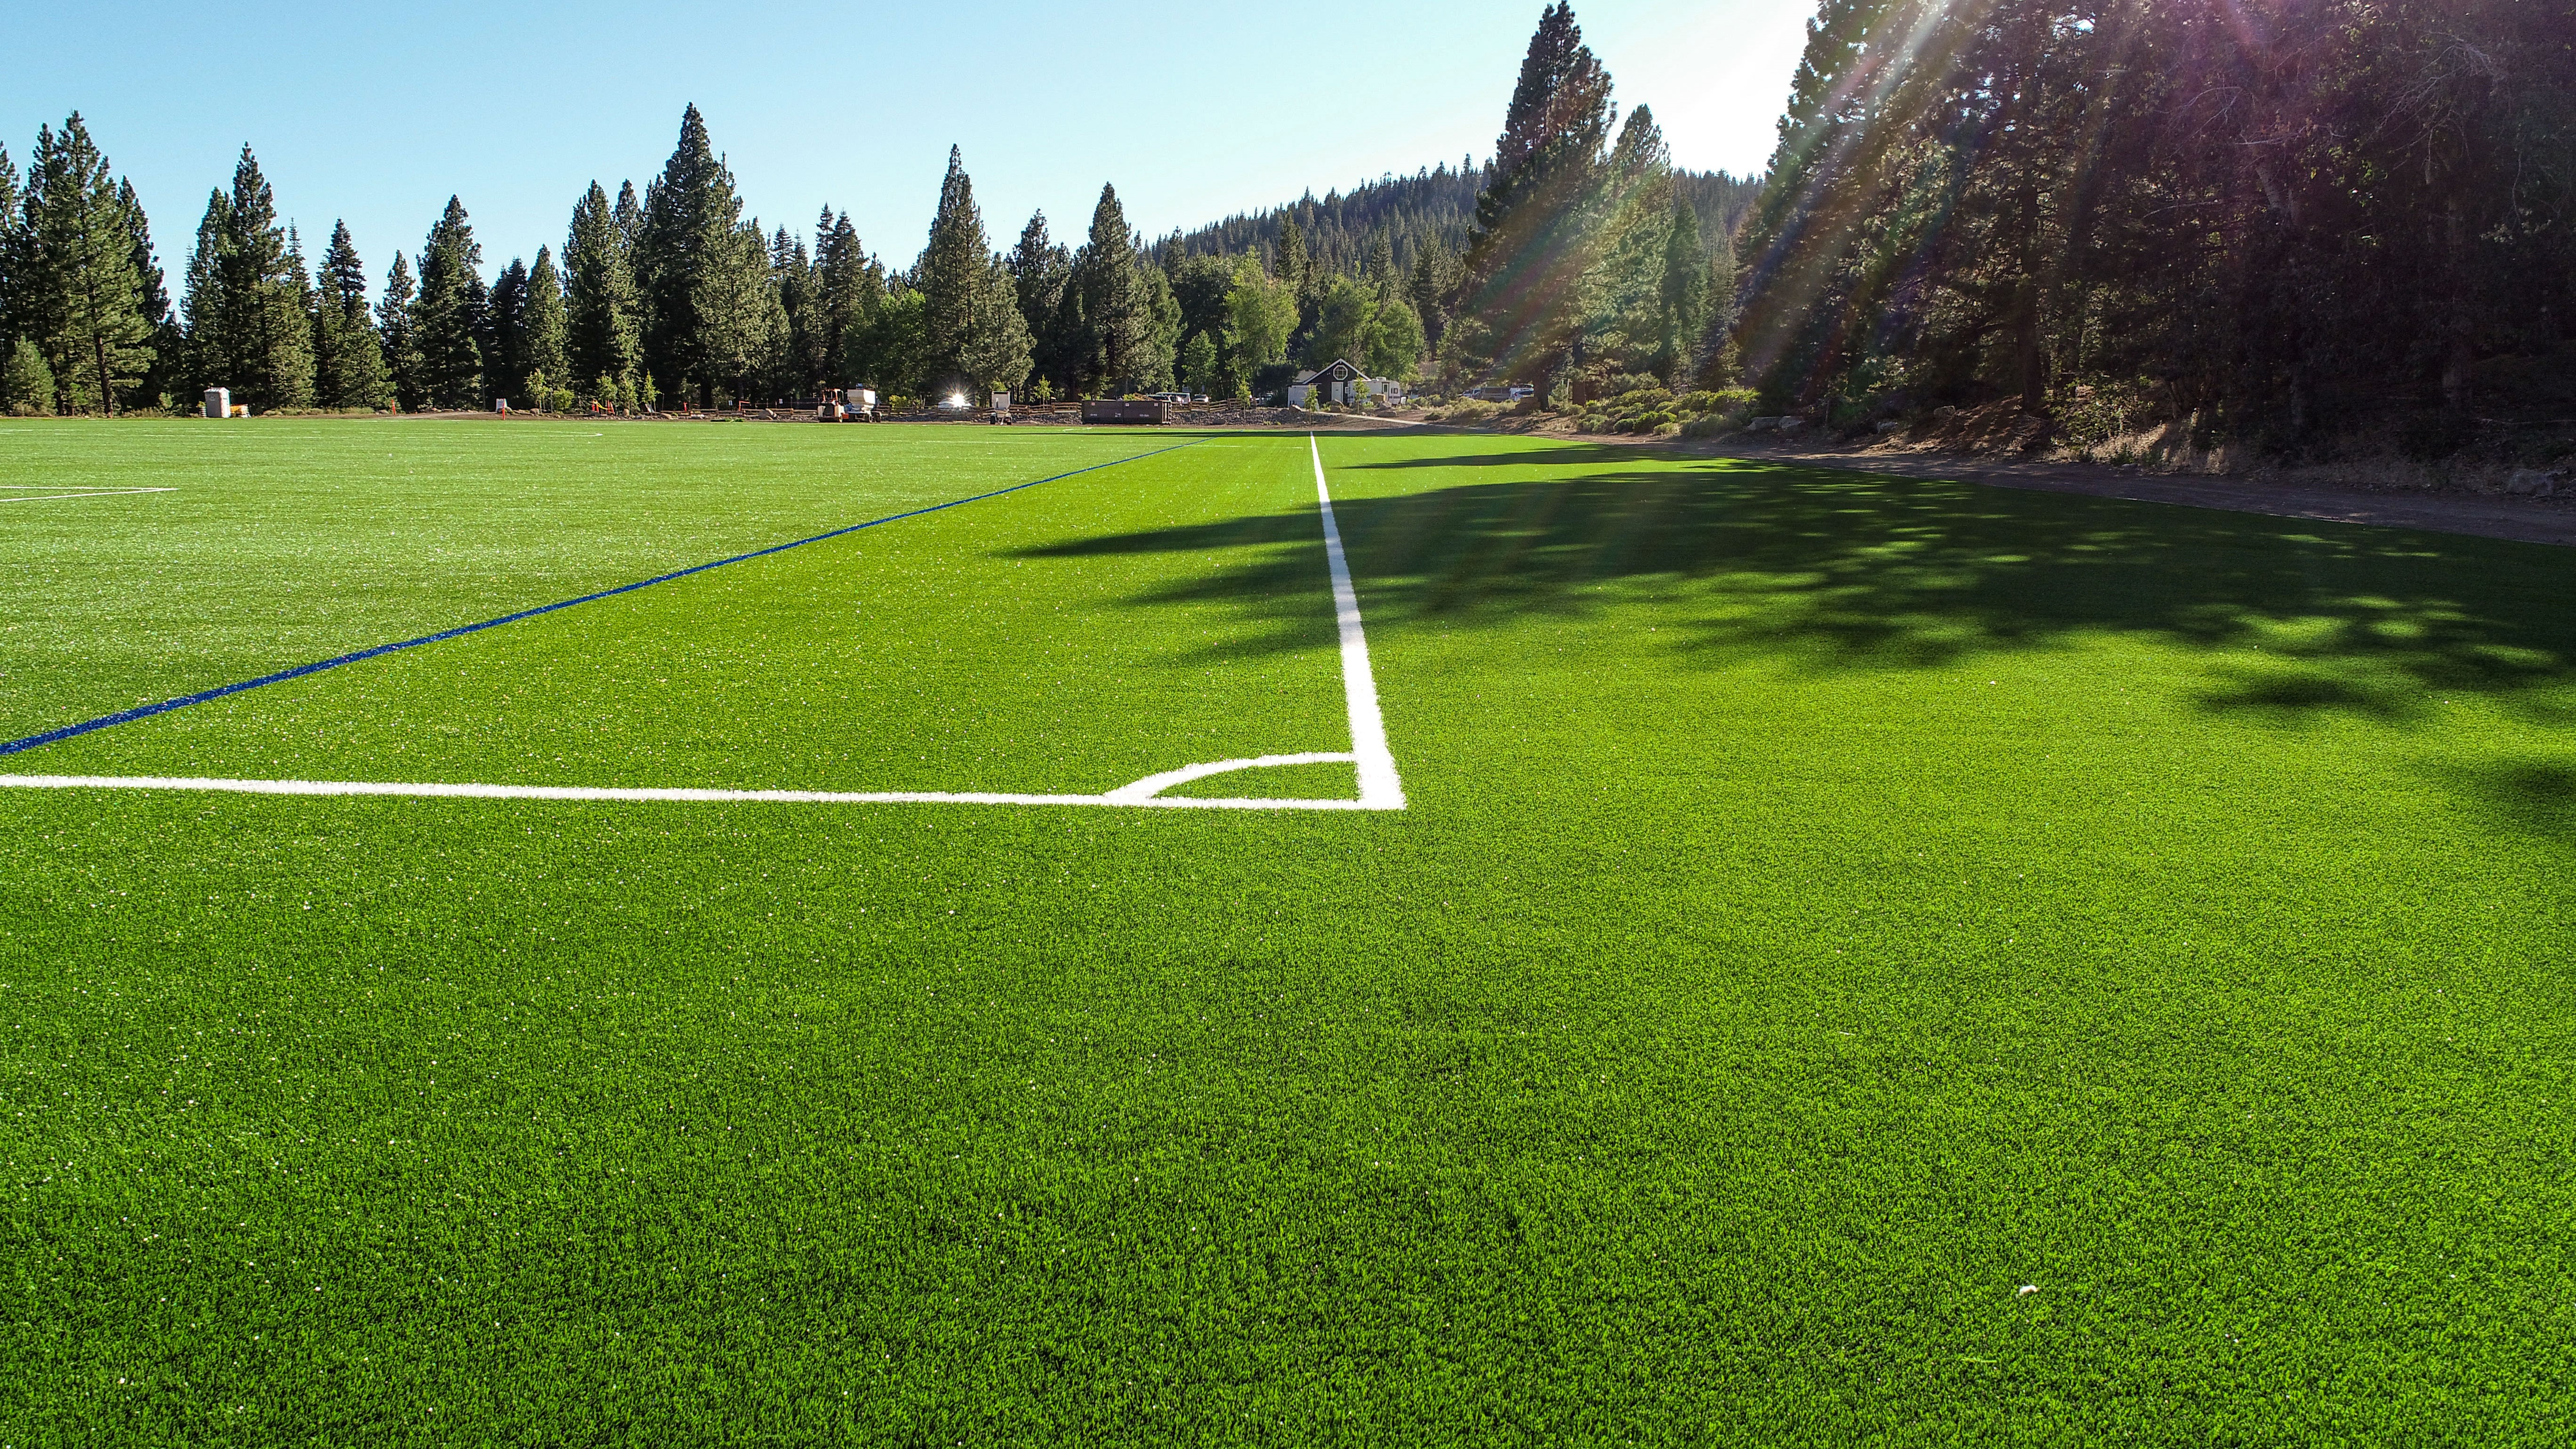 NORTH TAHOE PUBLIC UTILITY DISTRICT SELECTS SHAW SPORTS TURF SYSTEM TO COMPLETE THE  REGION'S SOCCER AND LACROSSE FIELD Image